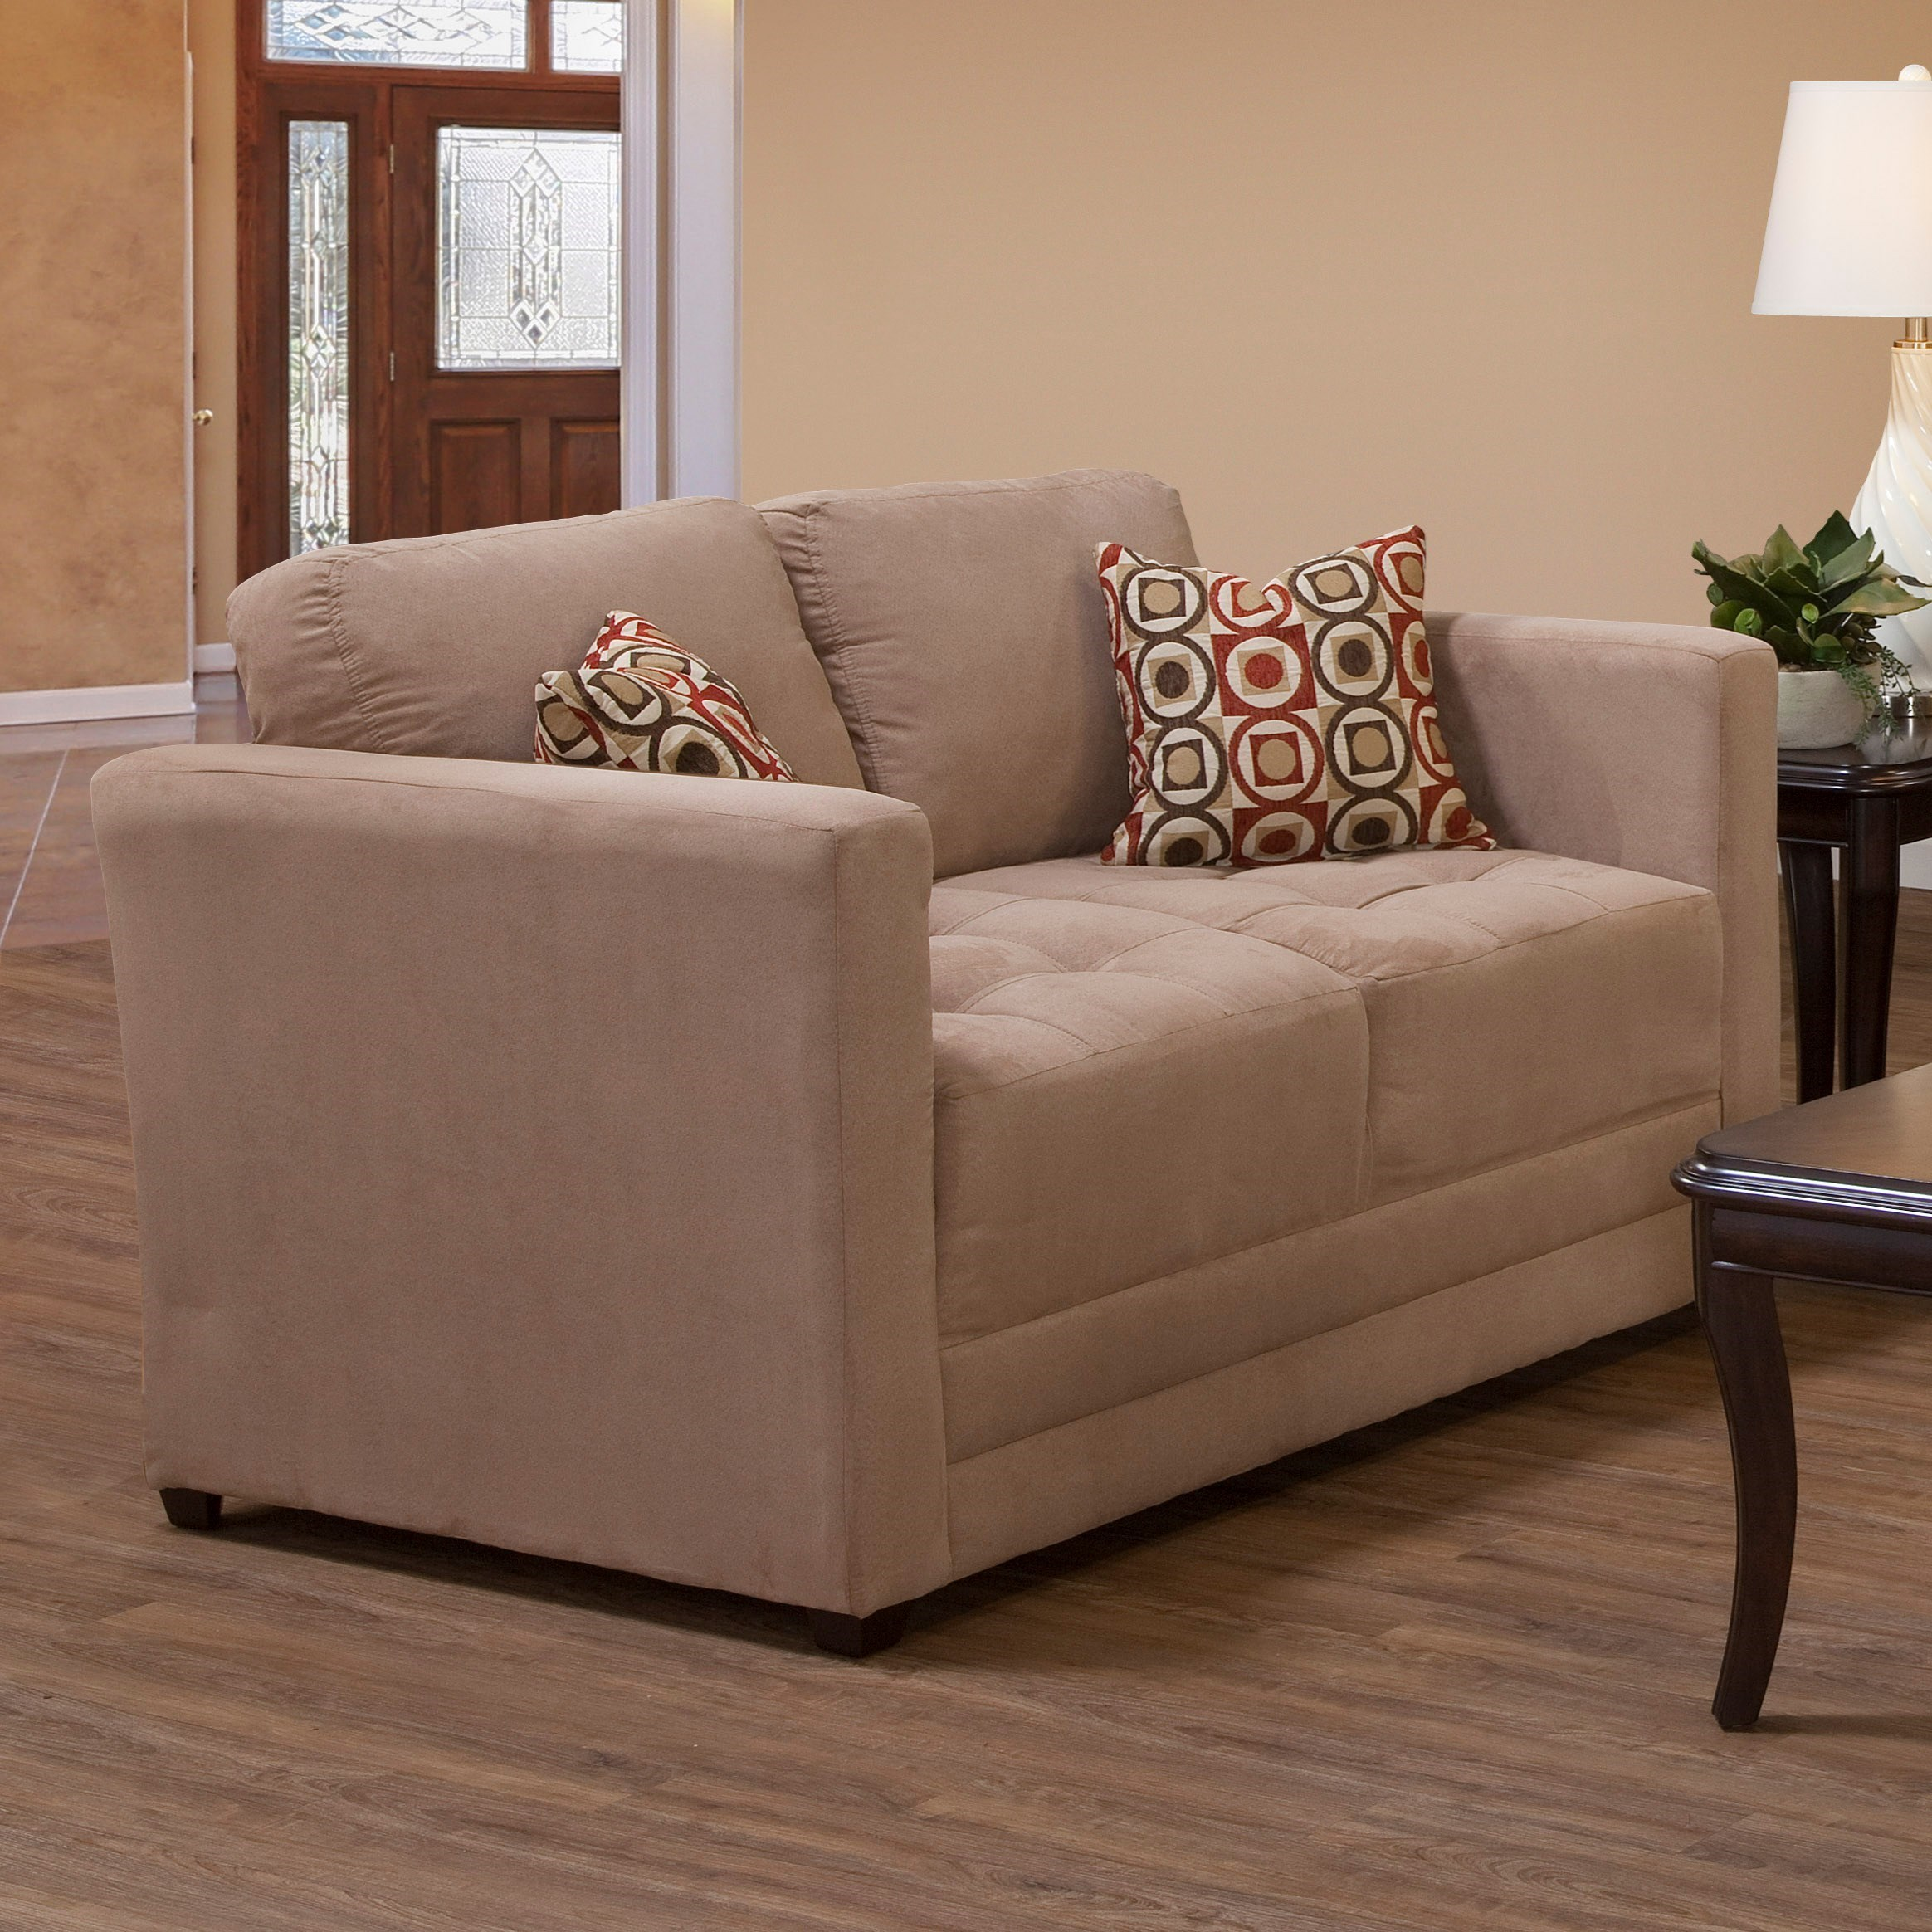 1085 Loveseat by Serta Upholstery by Hughes Furniture at Rooms for Less